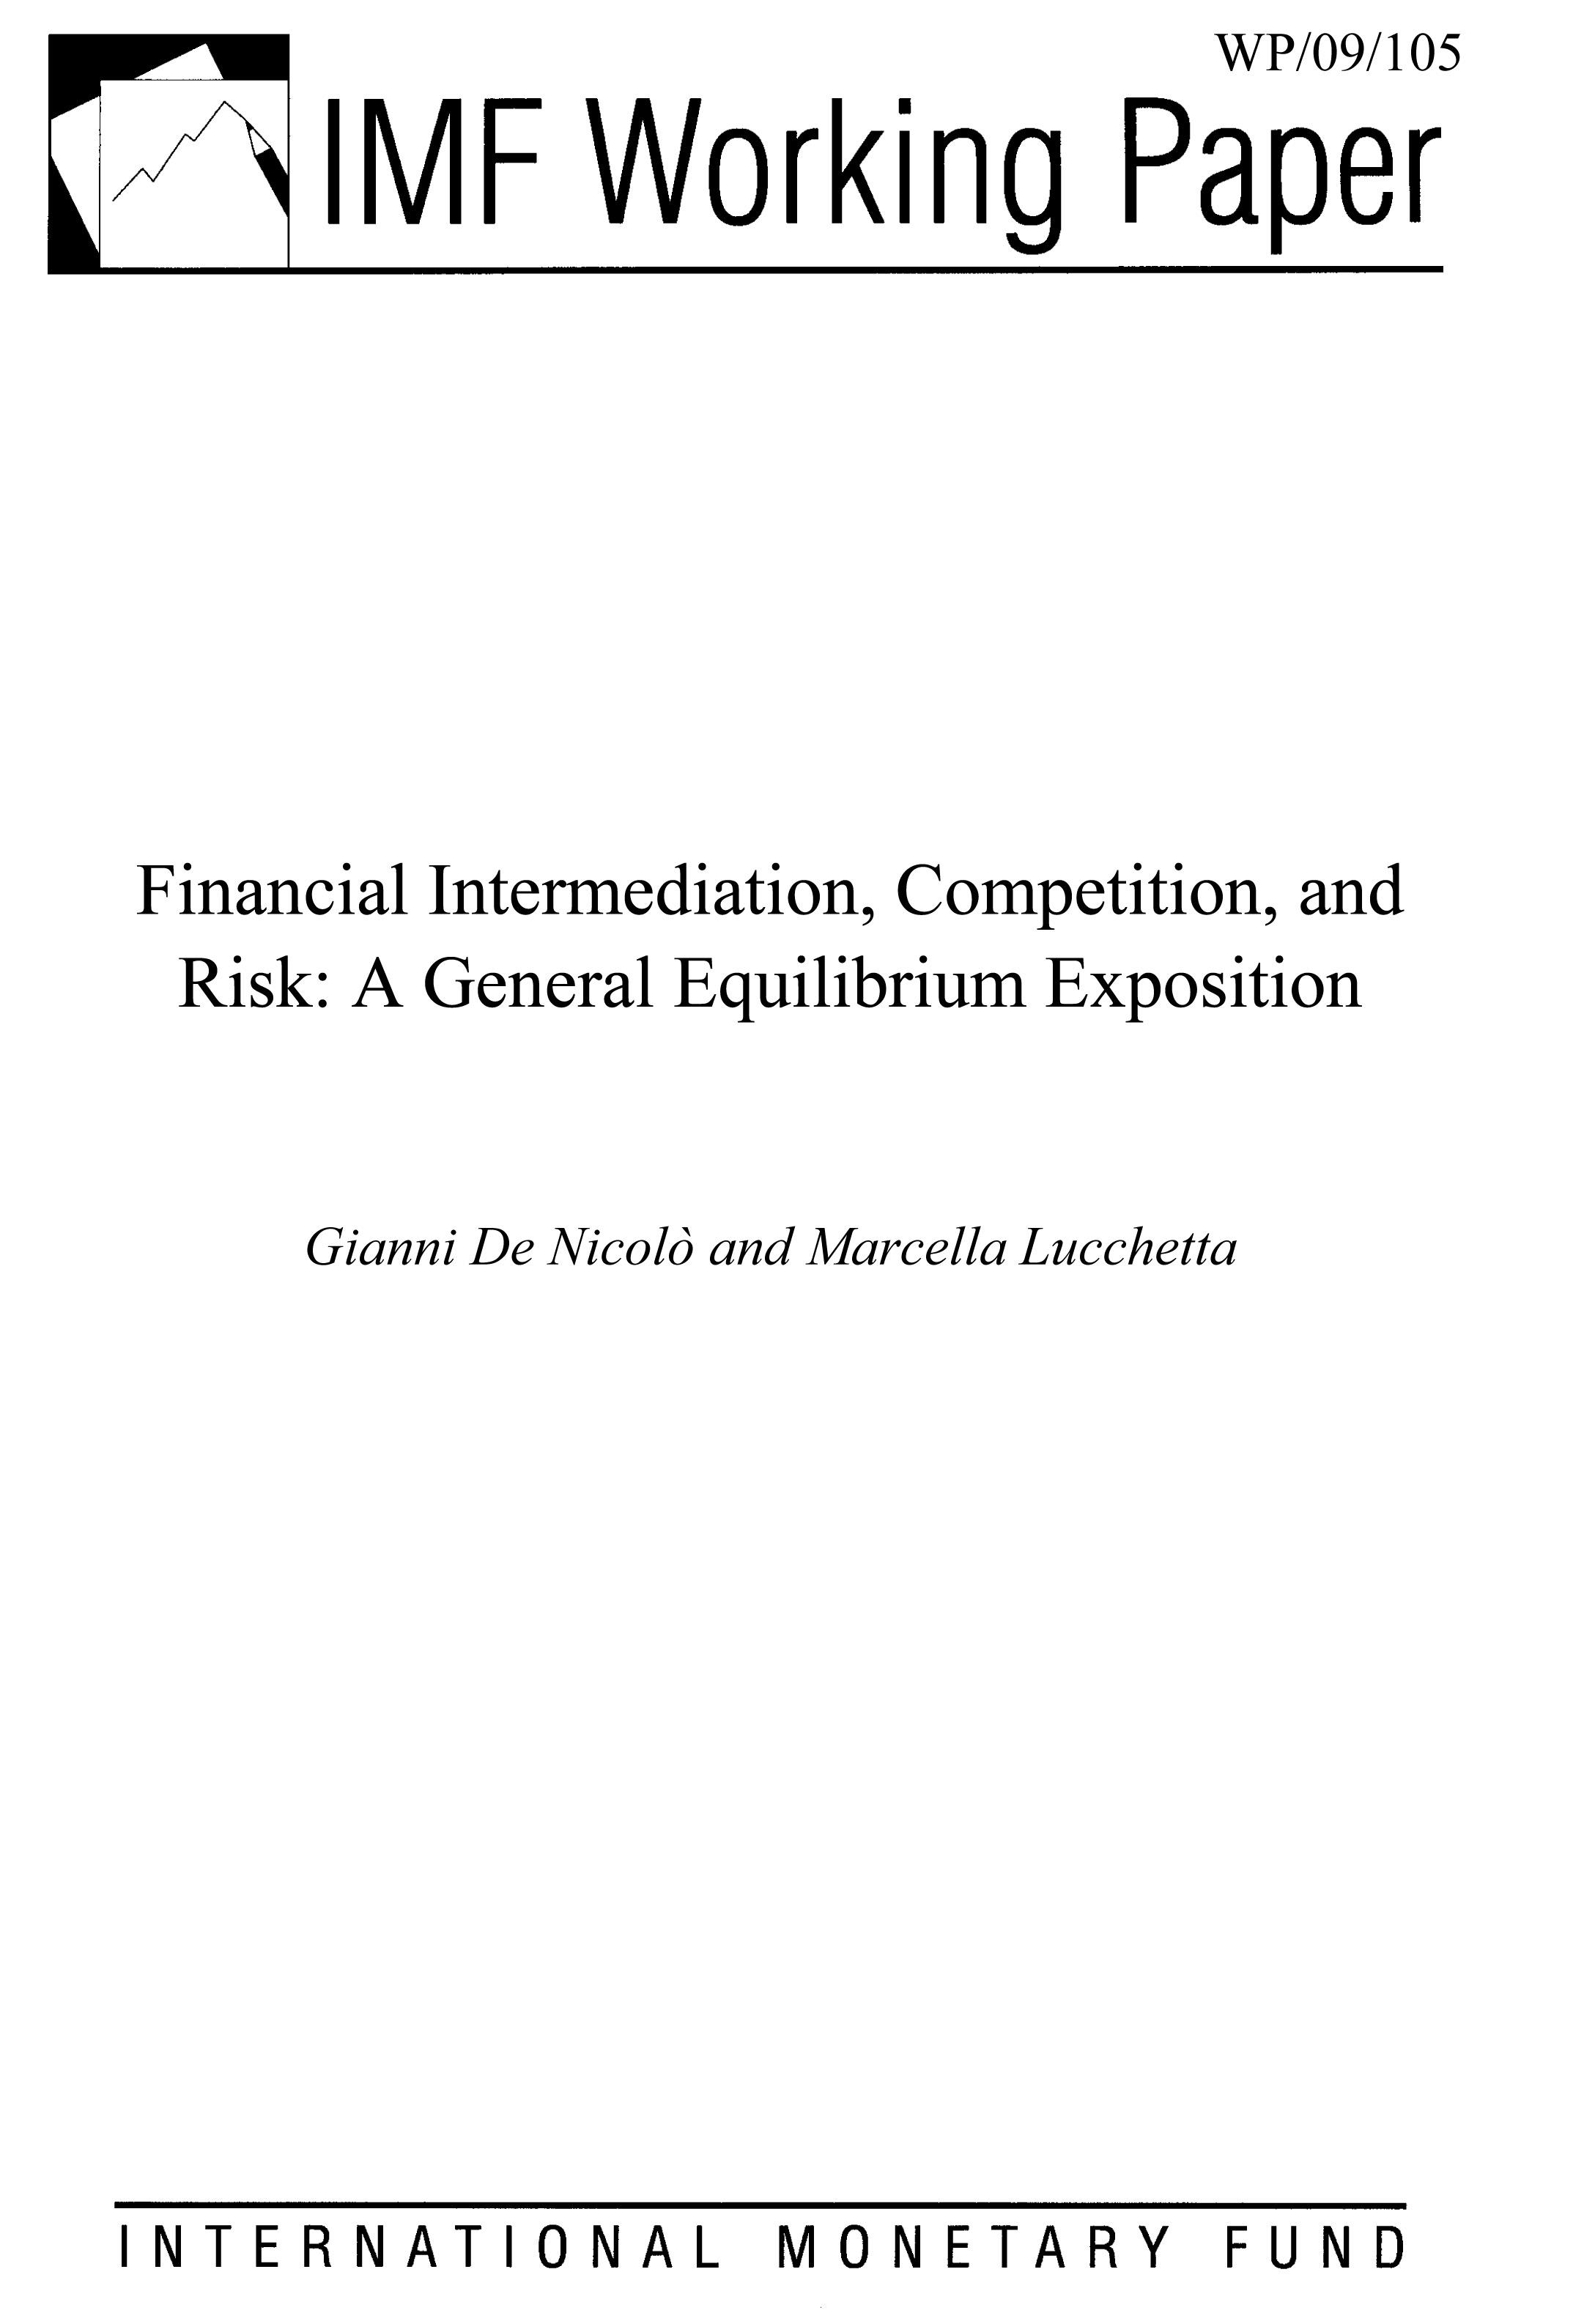 Financial Intermediation, Competition, and Risk: A General Equilibrium Exposition